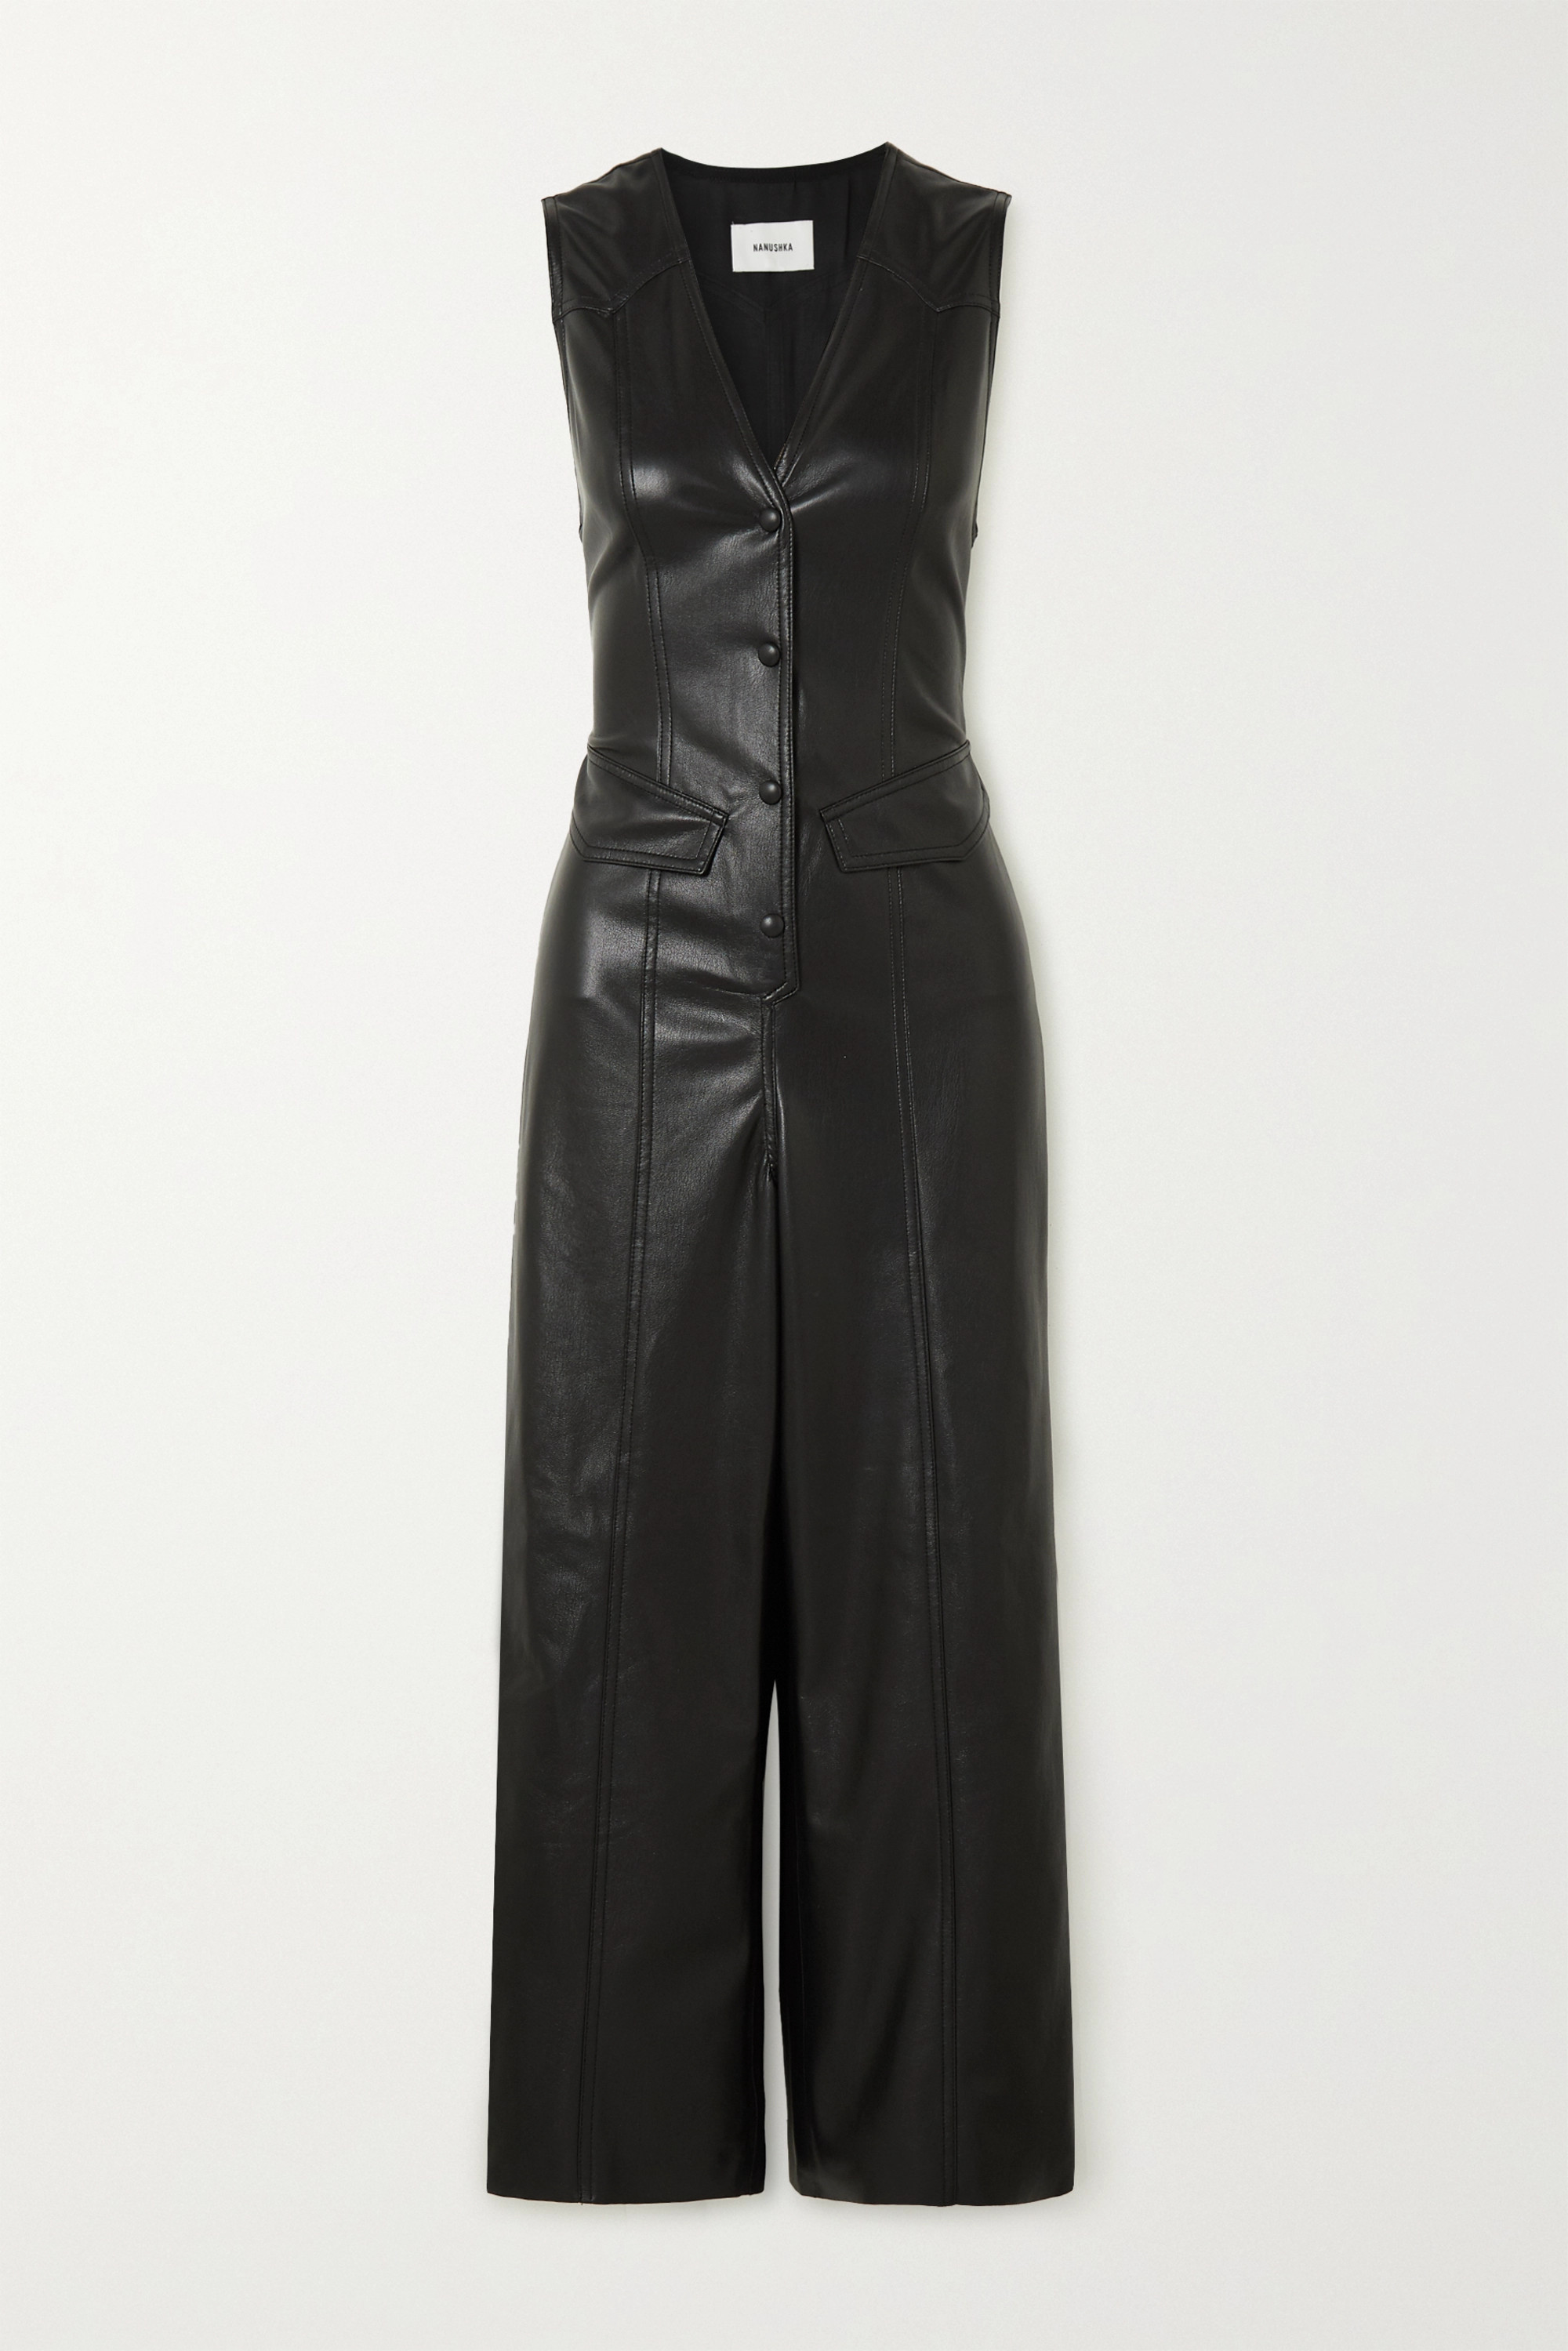 Nanushka Freya vegan leather jumpsuit